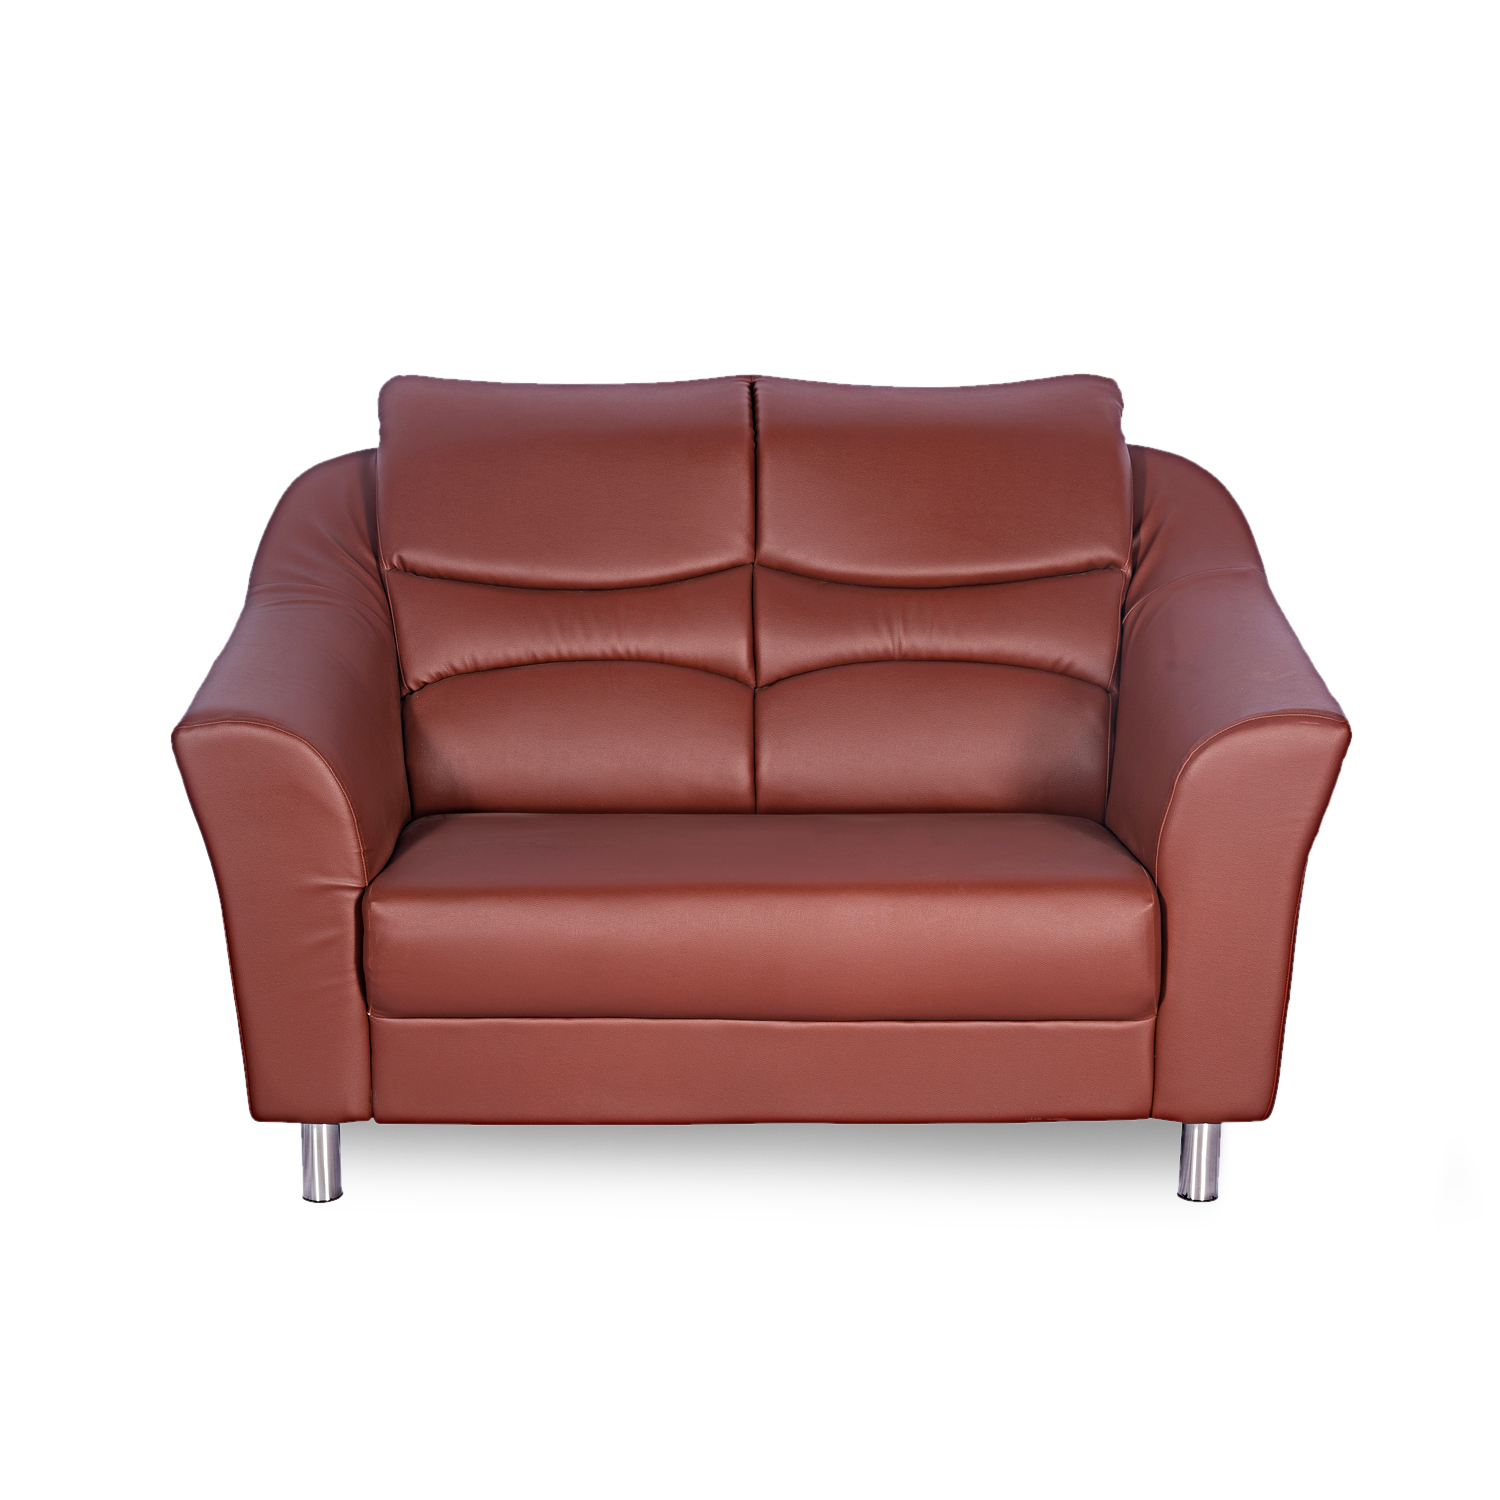 Godrej Interio Leatherette 2 Seater Sofa Available At Flipkart For